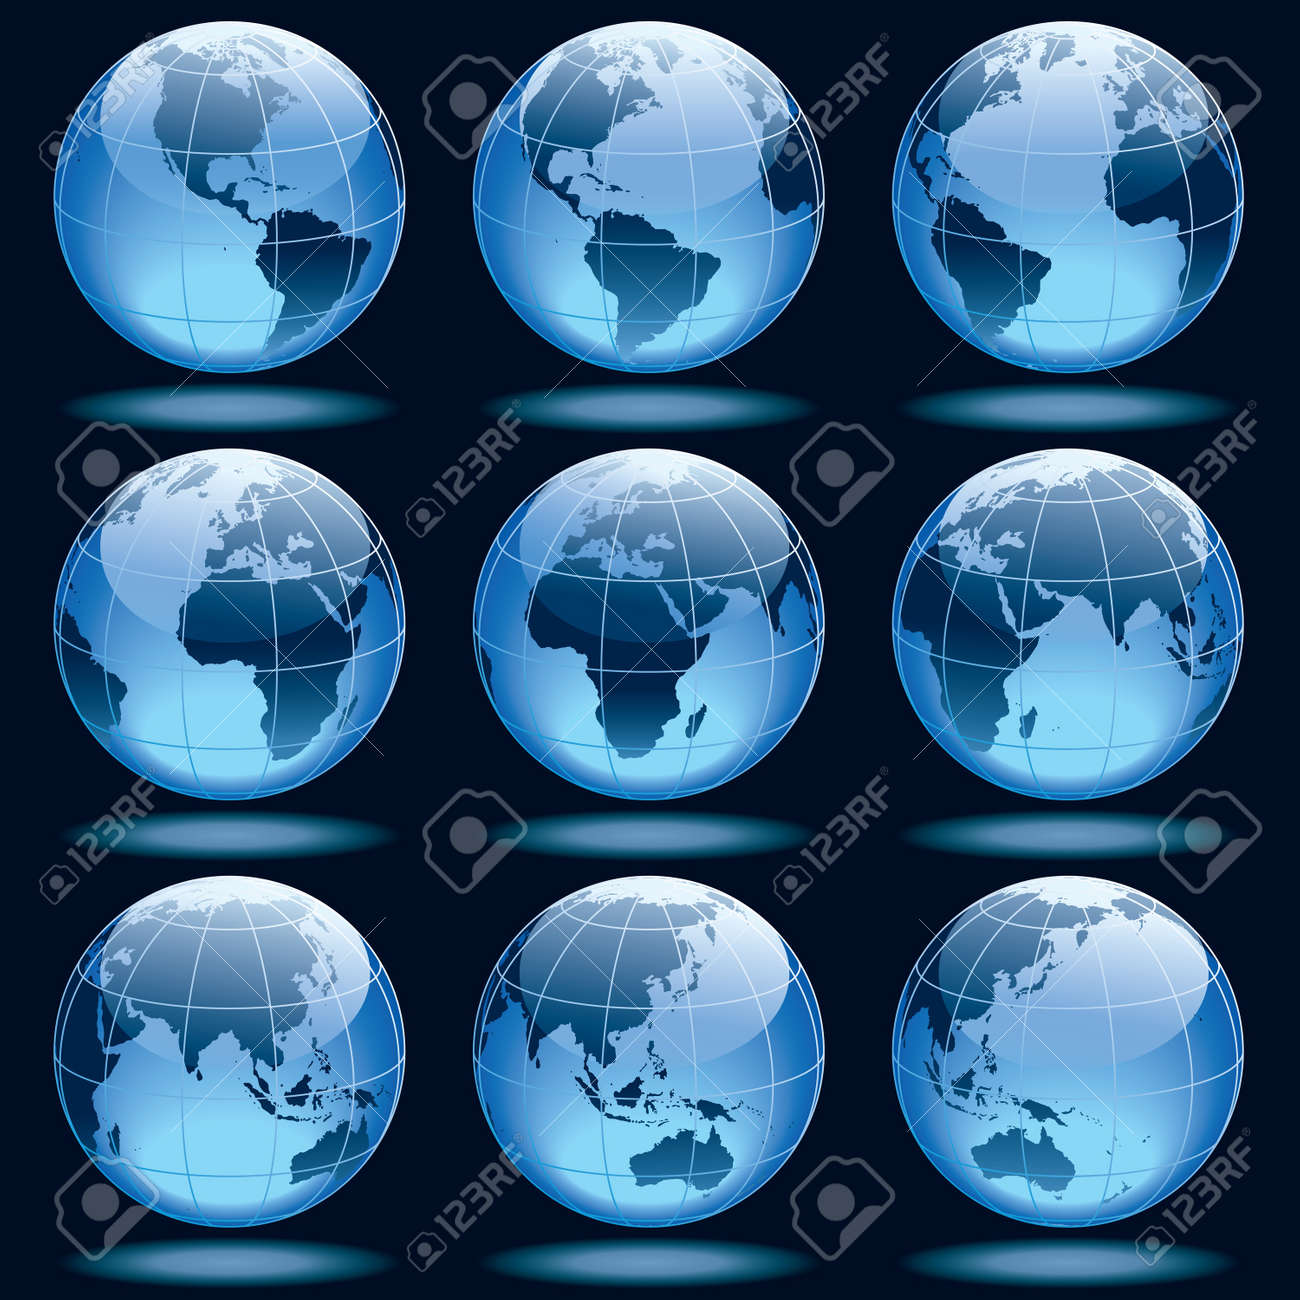 Set of nine globes showing earth with all continents. - 9930722